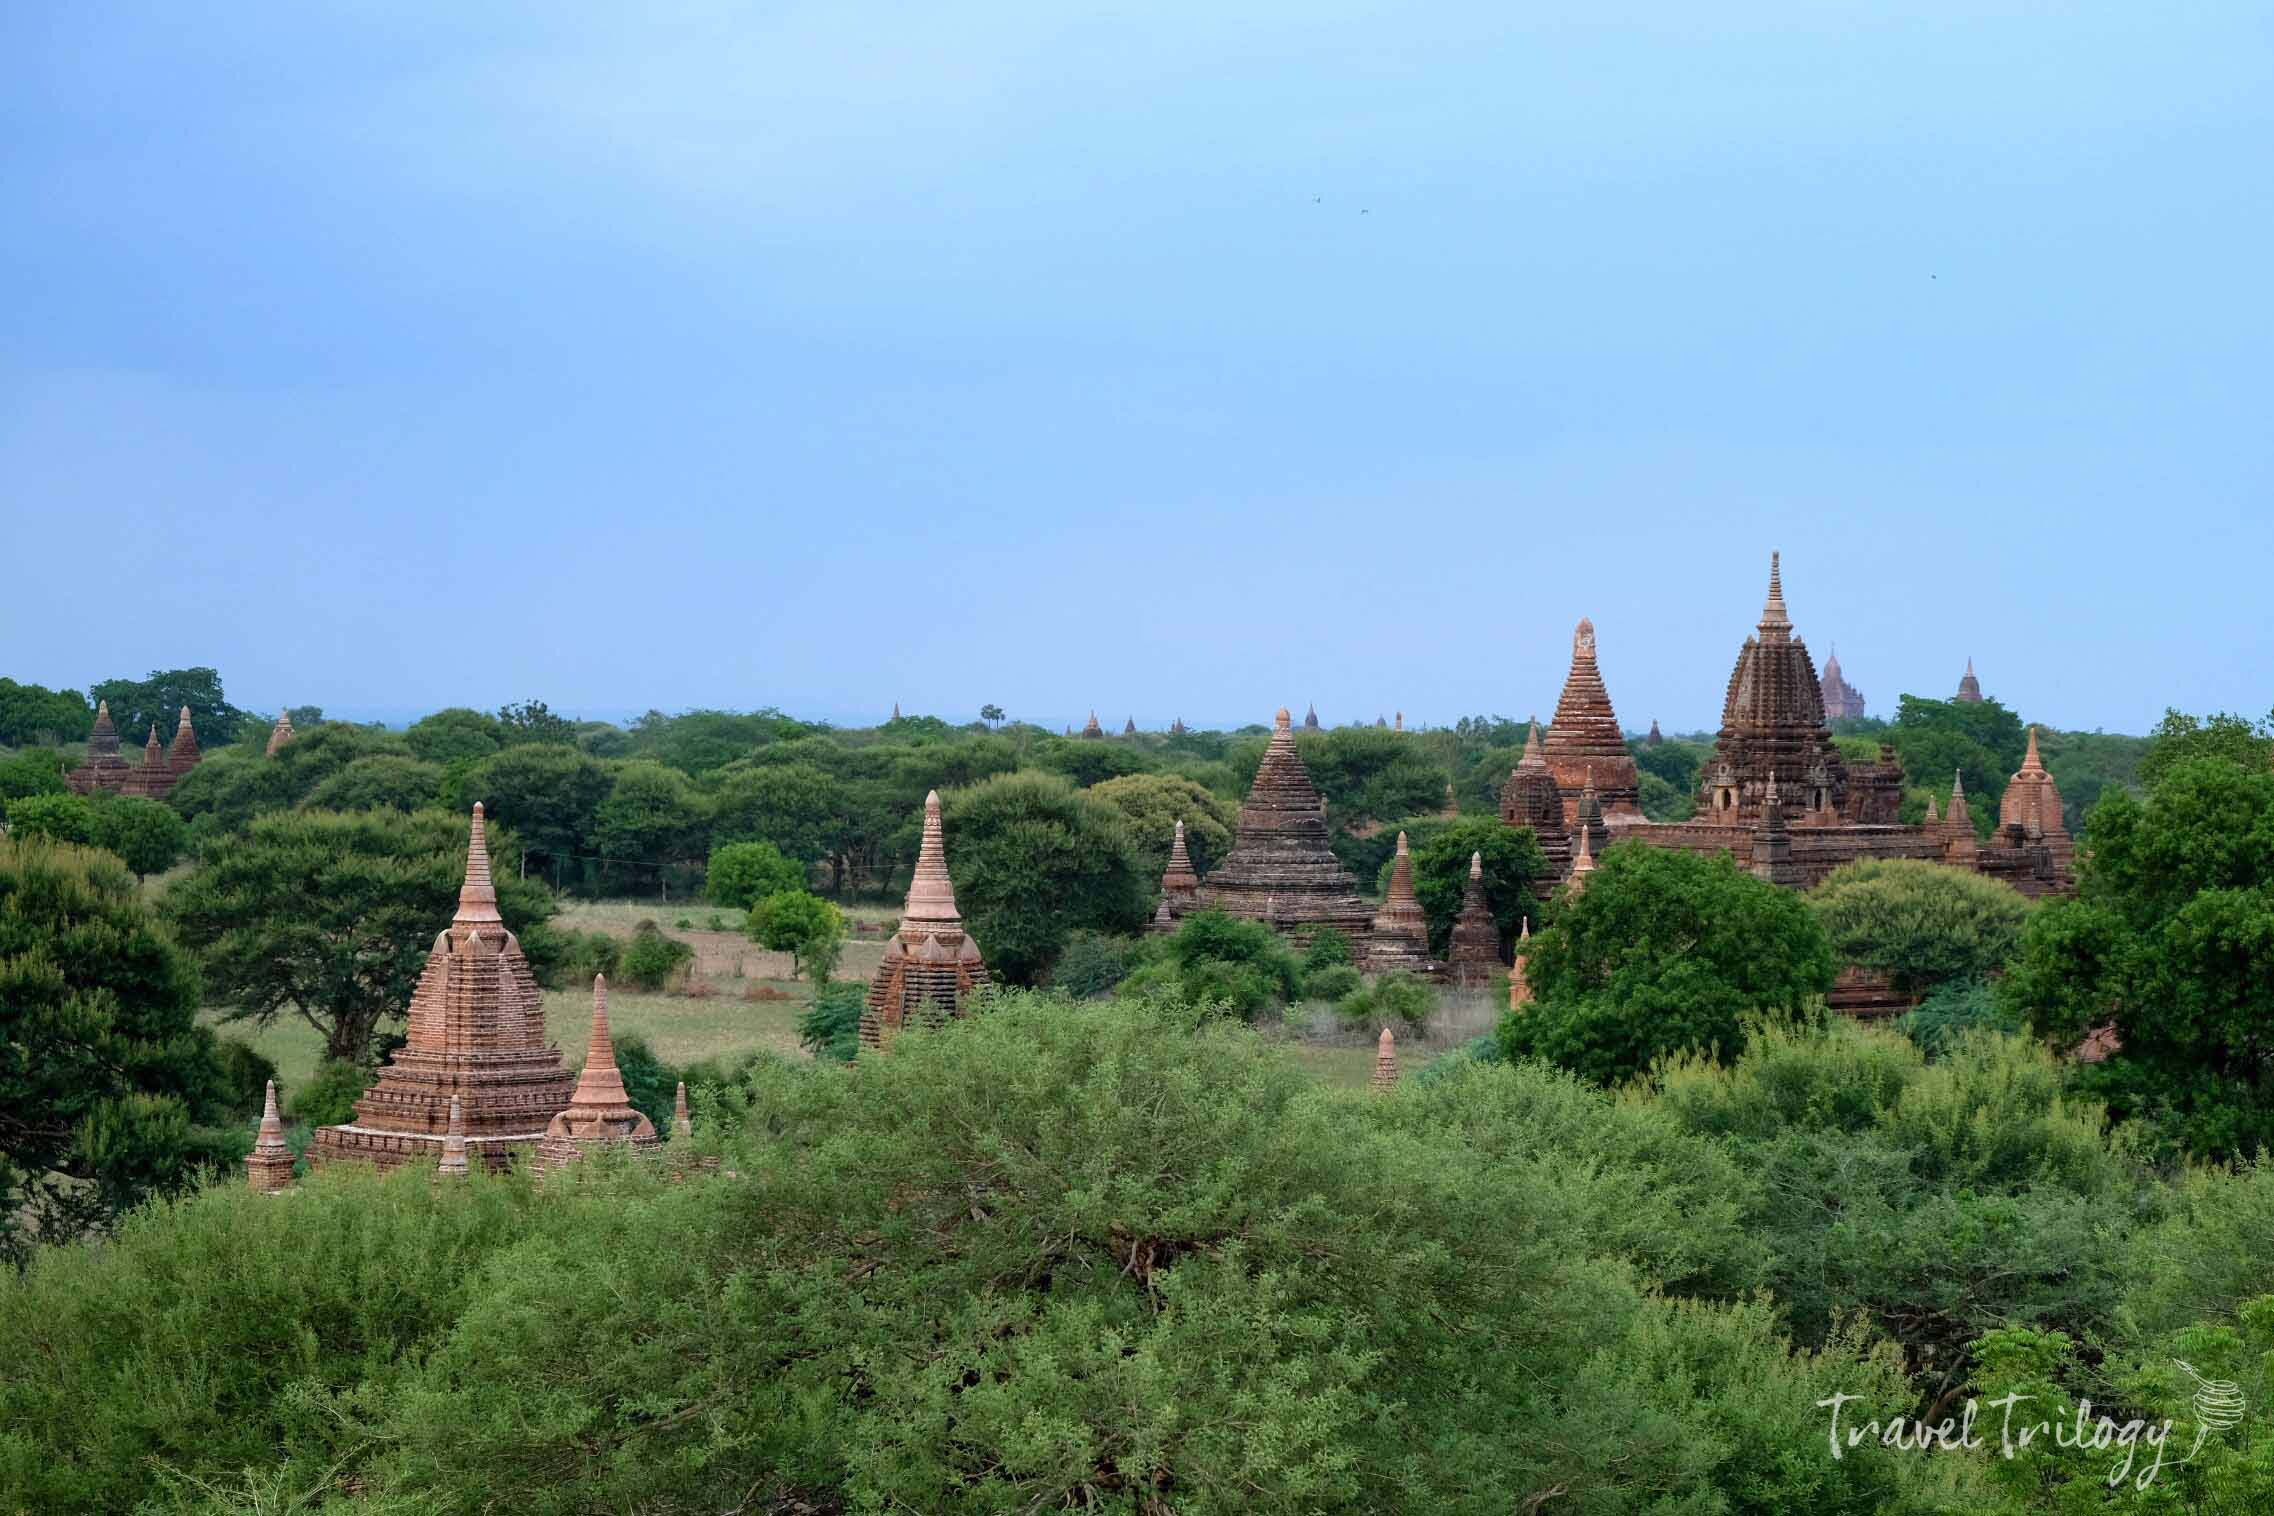 The monuments are clustered within the Bagan Archeological Zone.